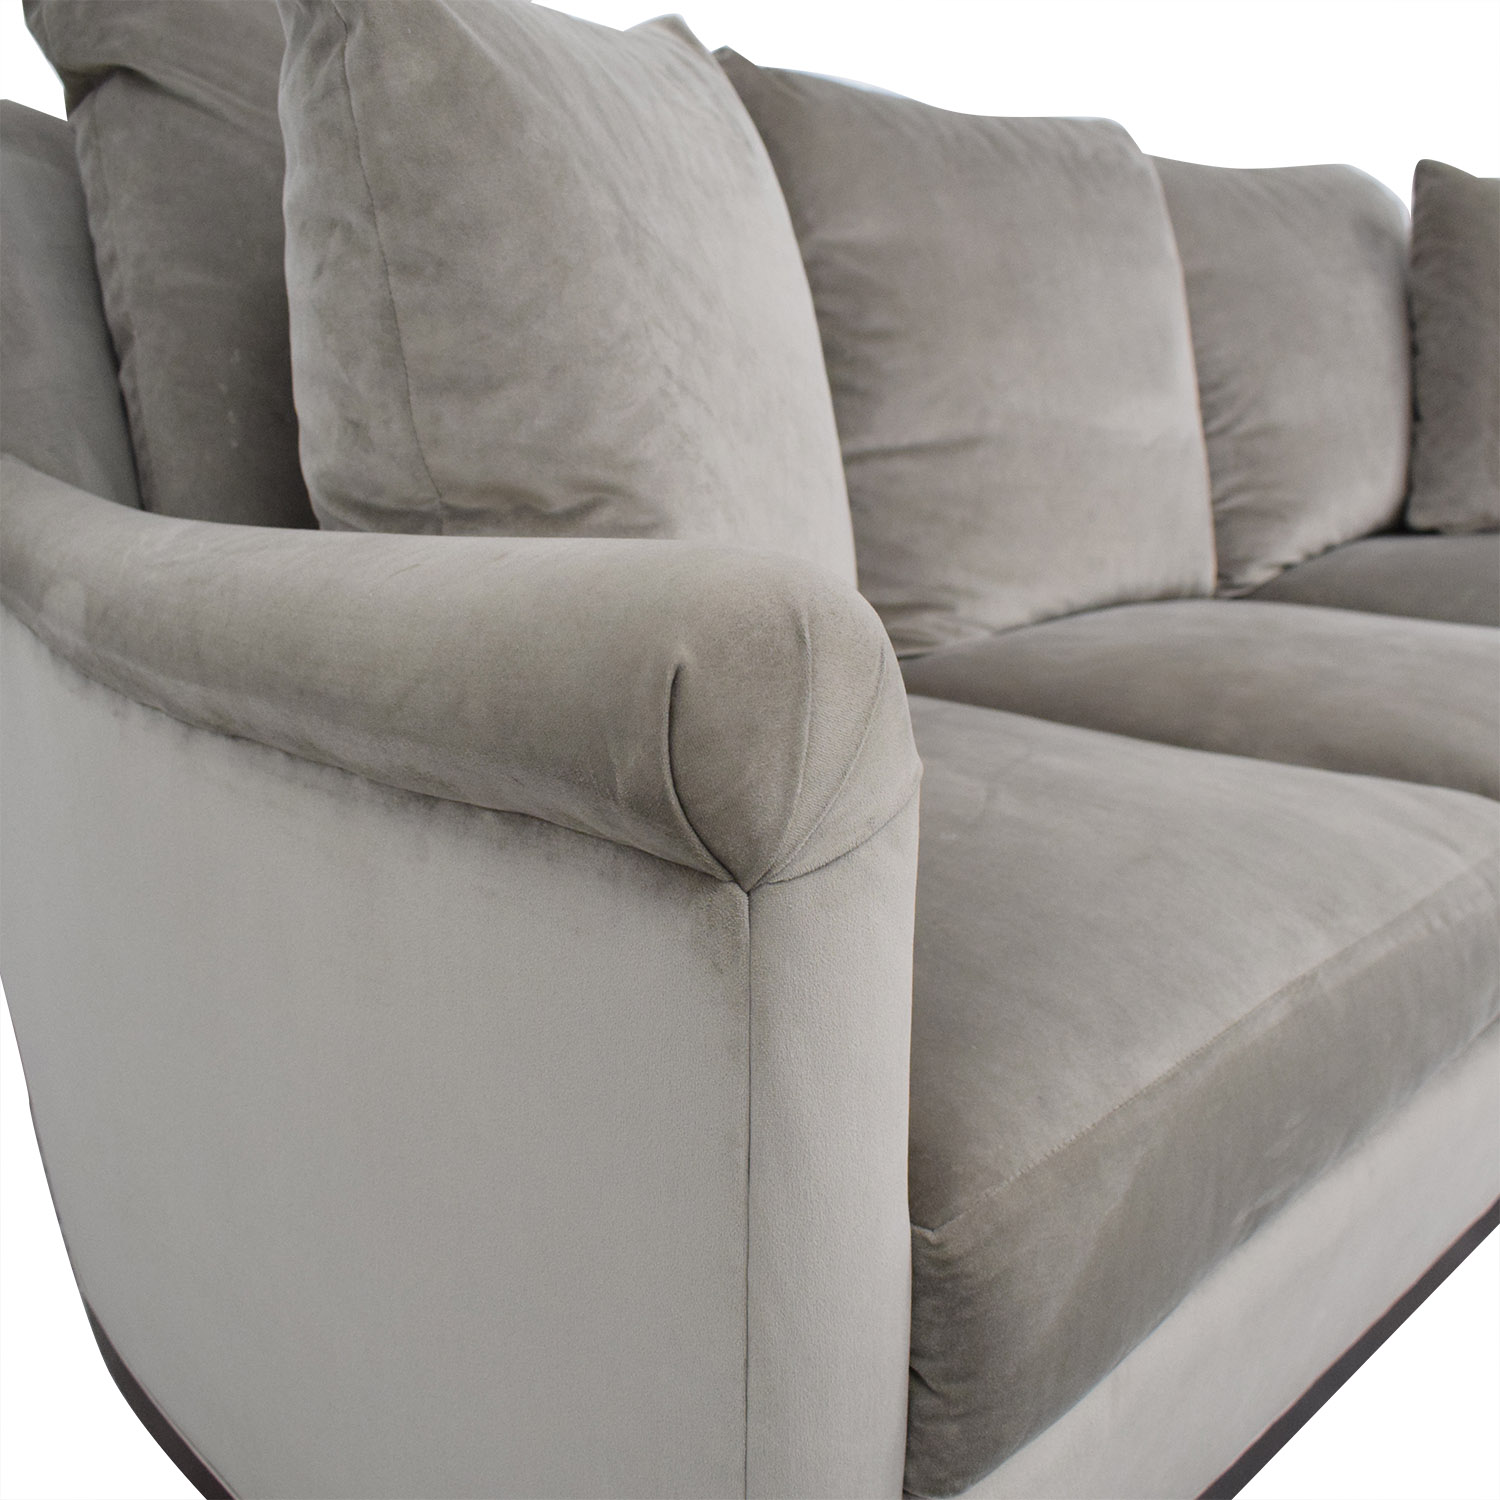 Safavieh Safavieh Roll Arm Velvet Sofa second hand